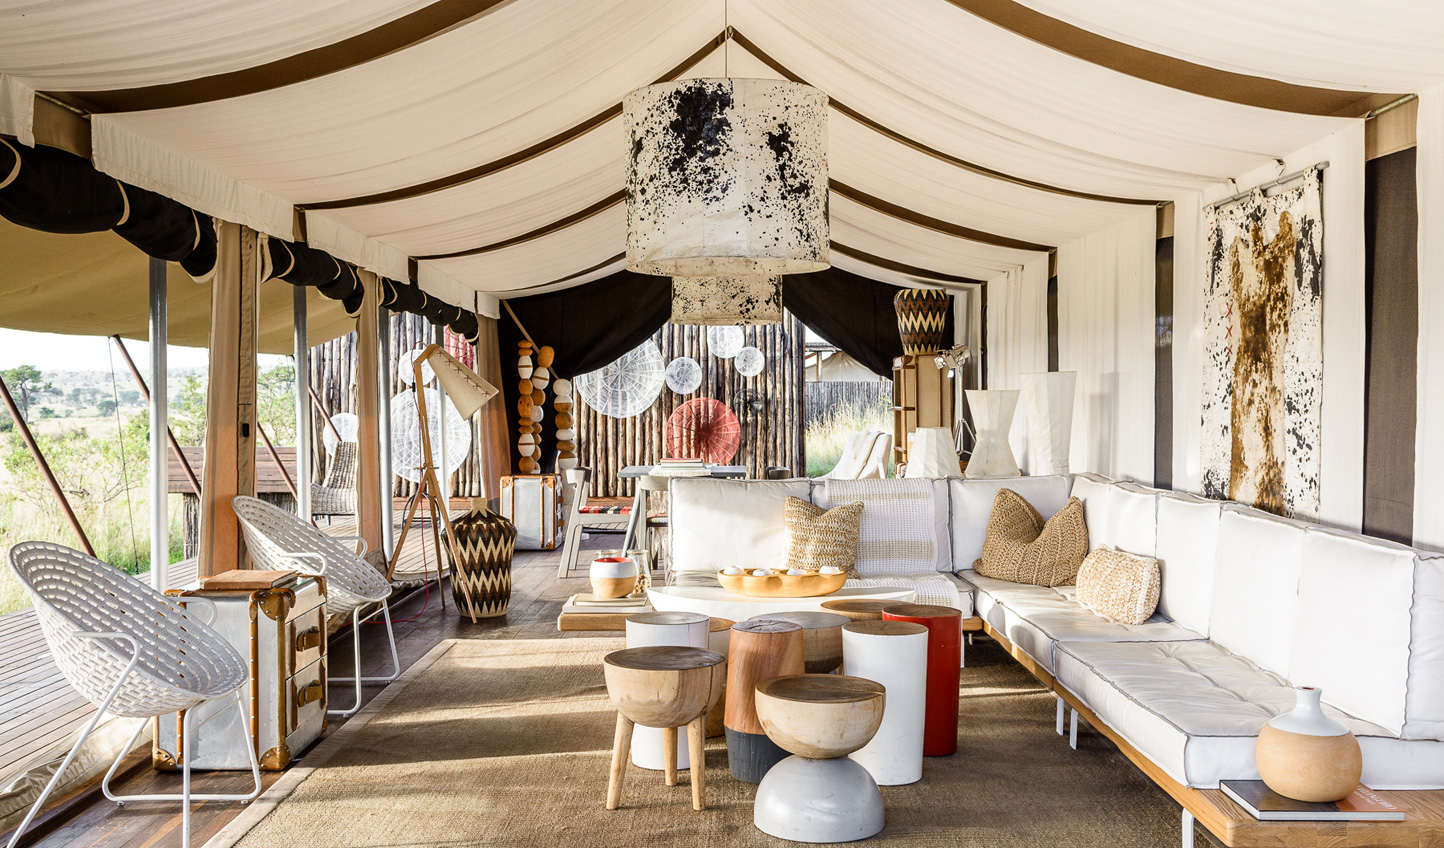 Relax in utmost luxury after a day out in the bush